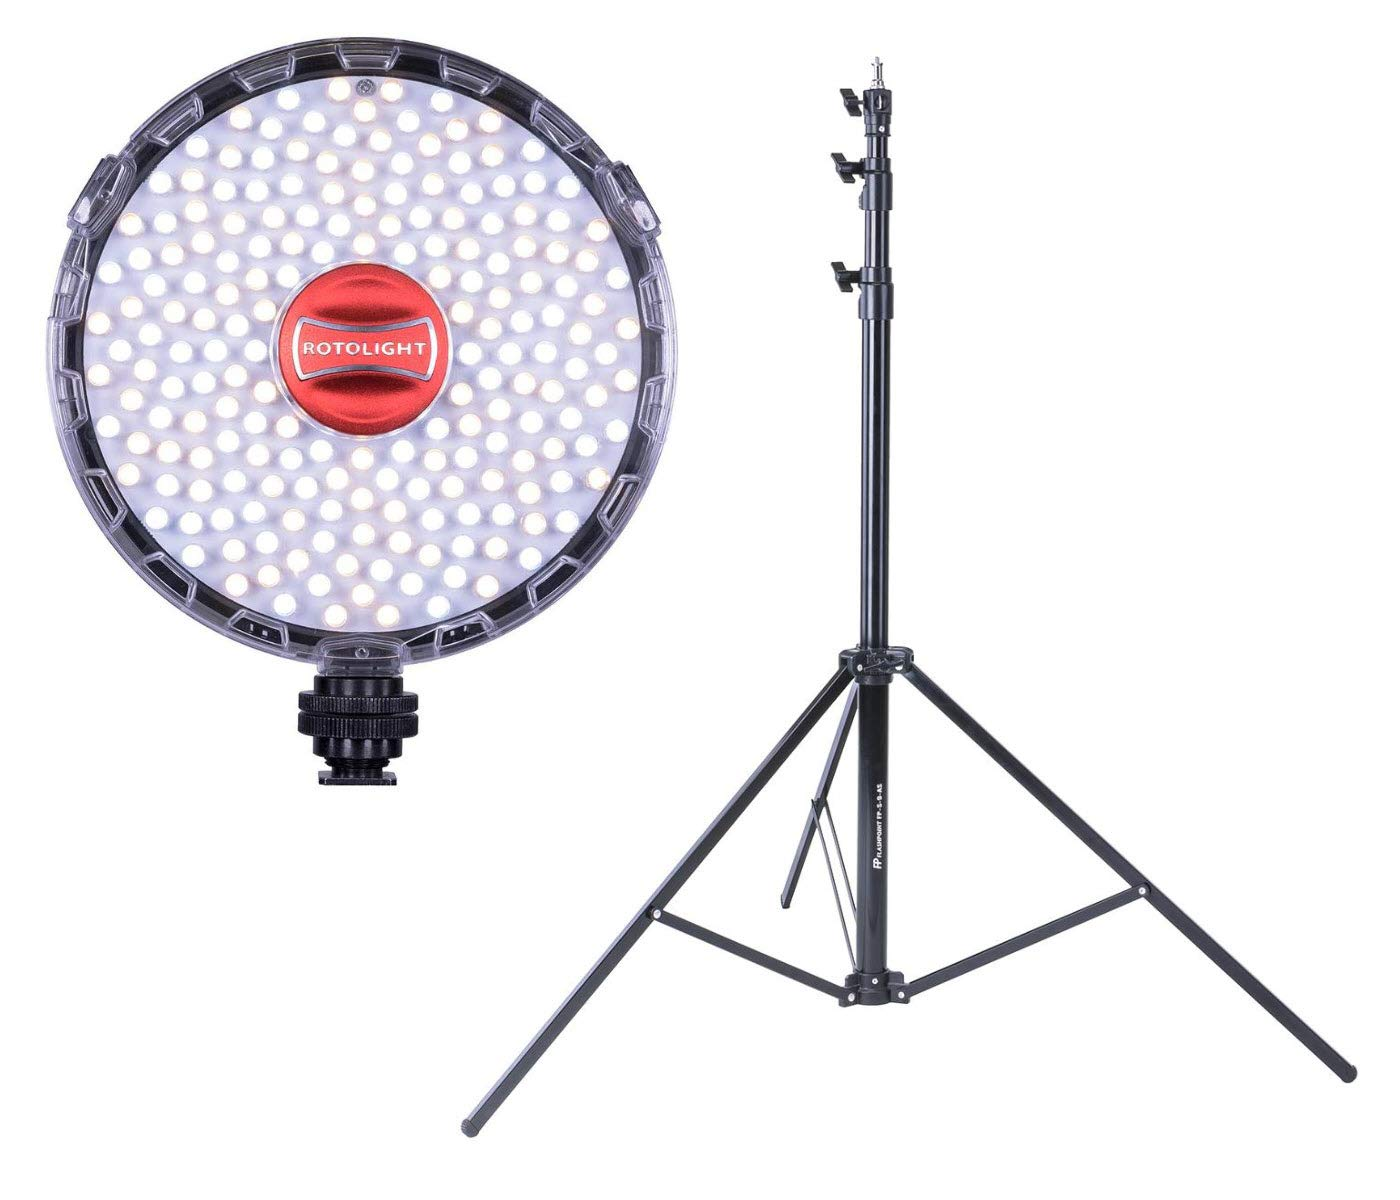 Rotolight NEO II On-Camera LED Lighting Fixture, Light and Flash Modes Bundle with Flashpoint 9 Foot Heavy-Duty Auto-Stand